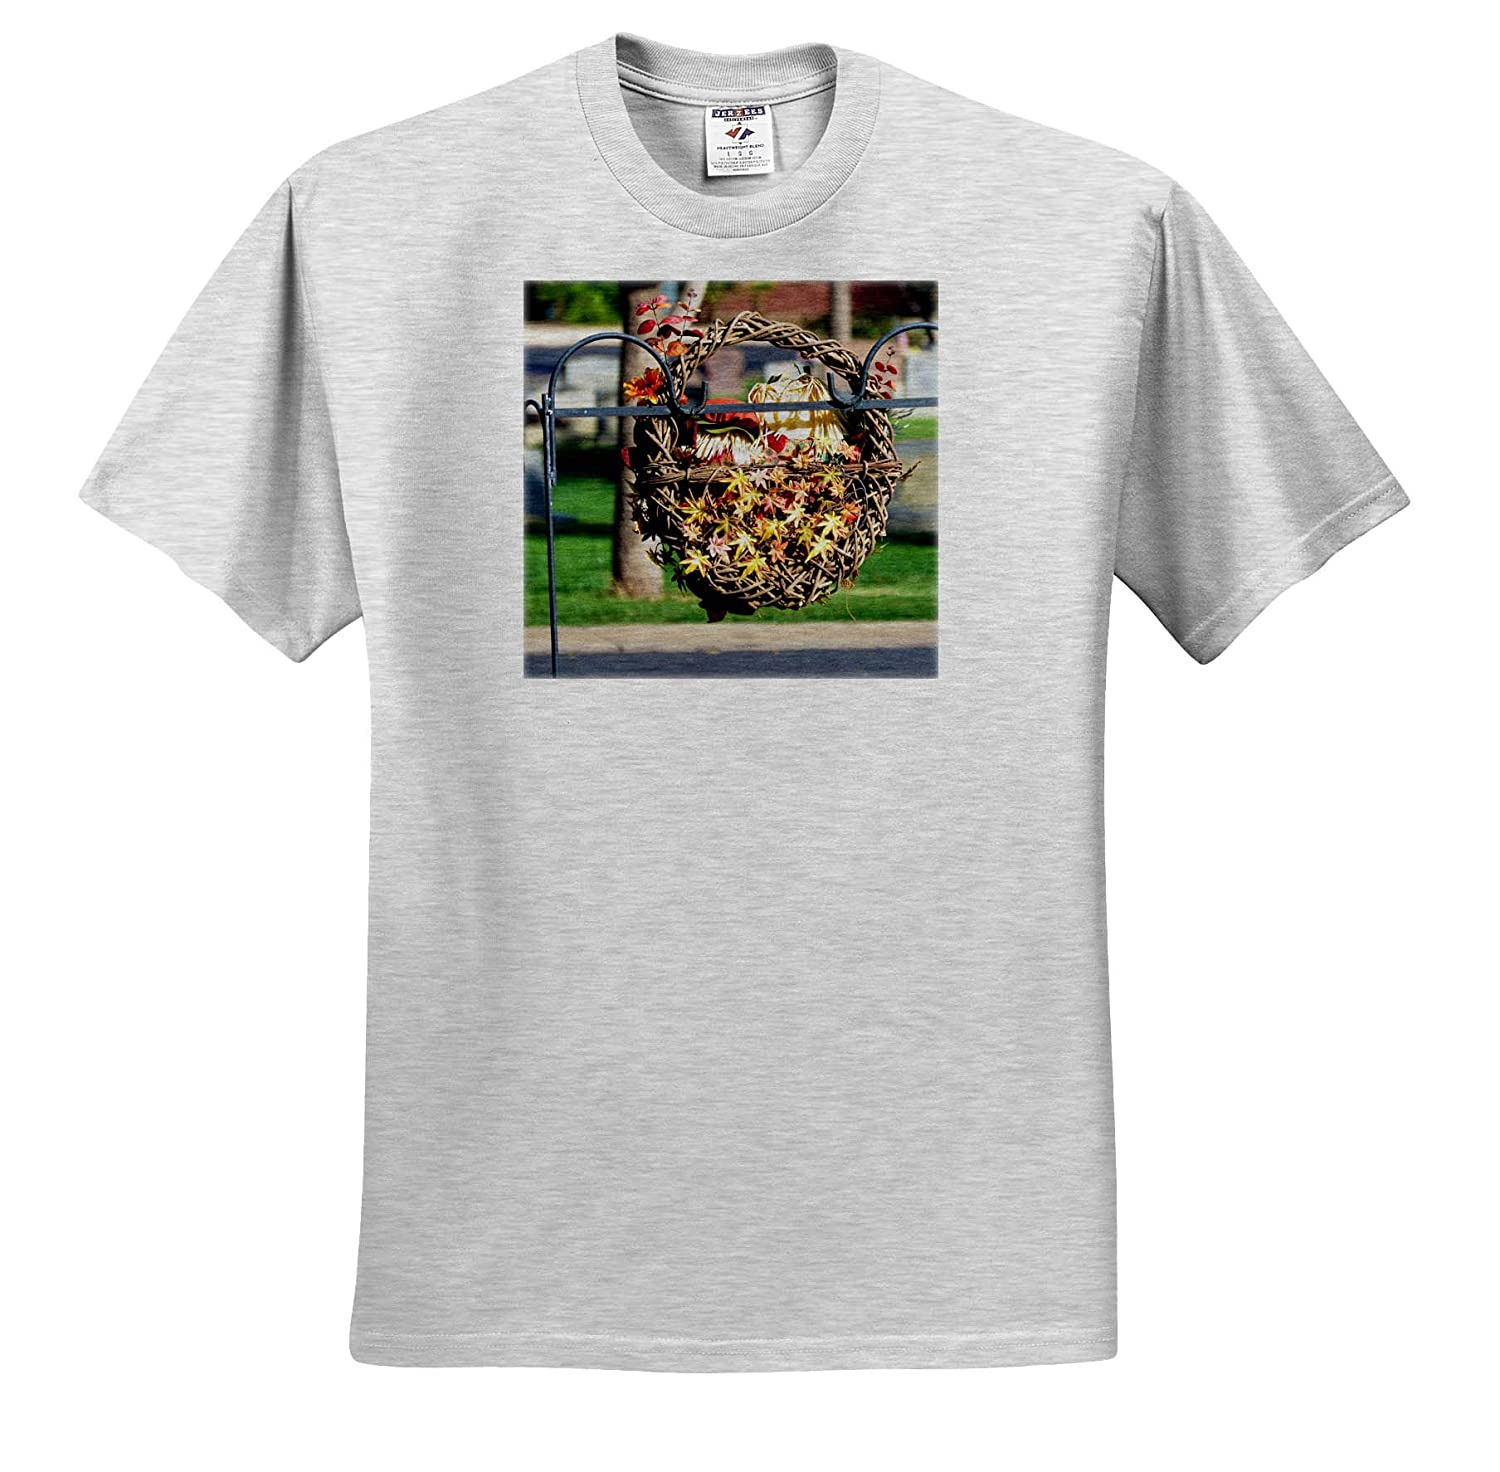 ts/_317886 Adult T-Shirt XL 3dRose Jos Fauxtographee- Harvest A Fall Basket Hanging on a Post at a cemetary